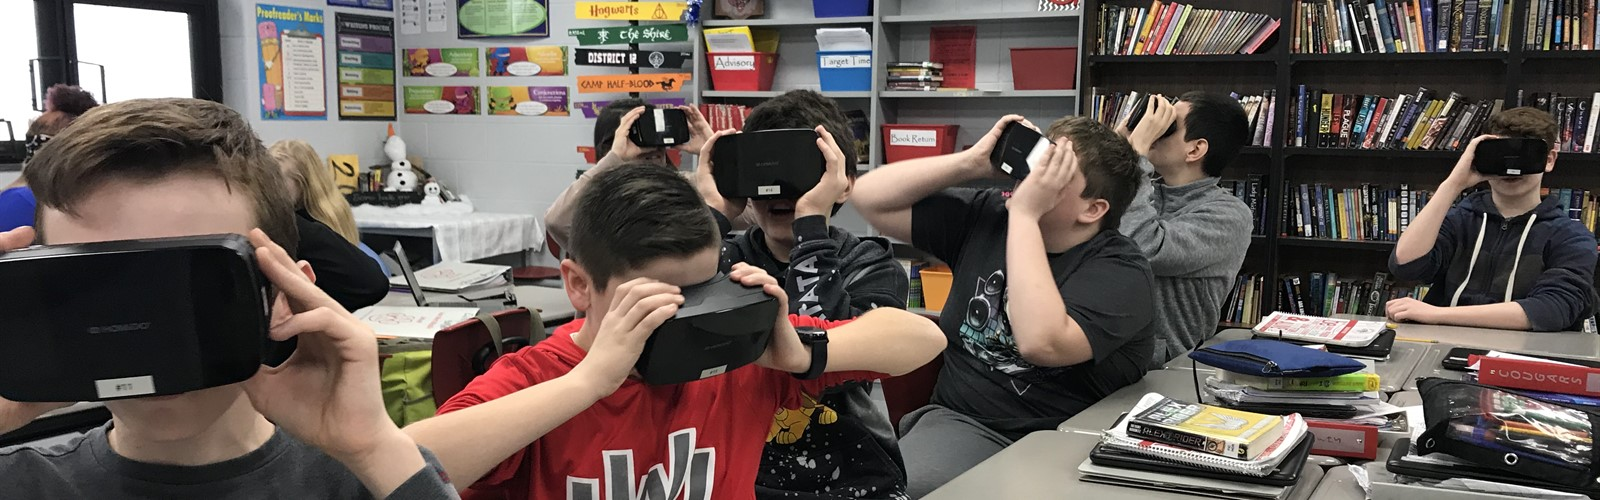 7th grade students using VR goggles during class